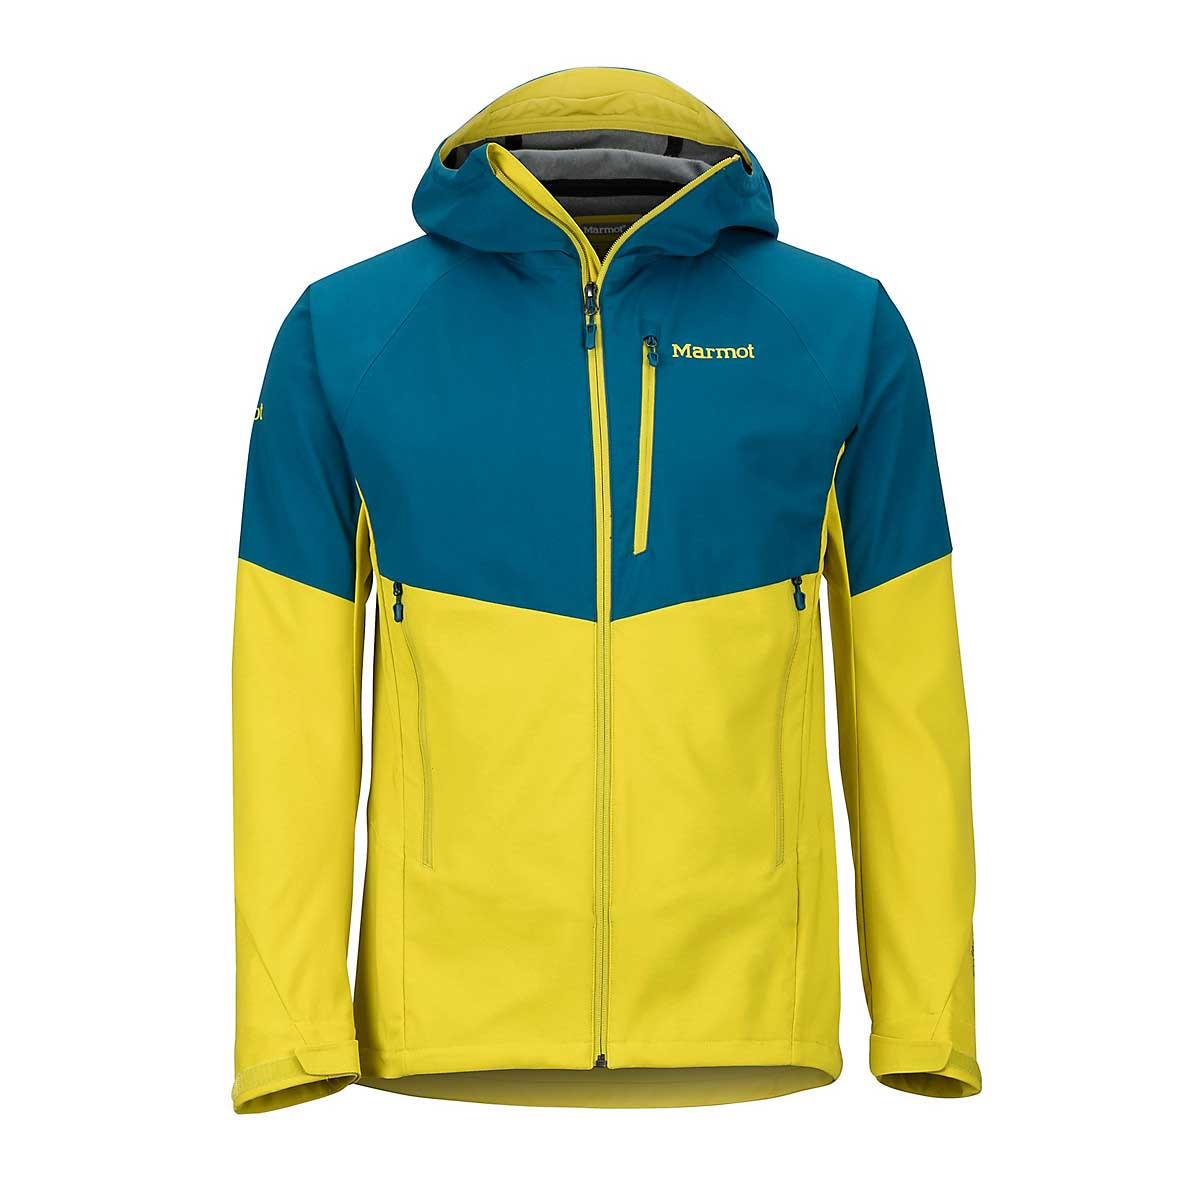 Marmot Men's ROM Jacket in Moroccan Blue and Citronelle